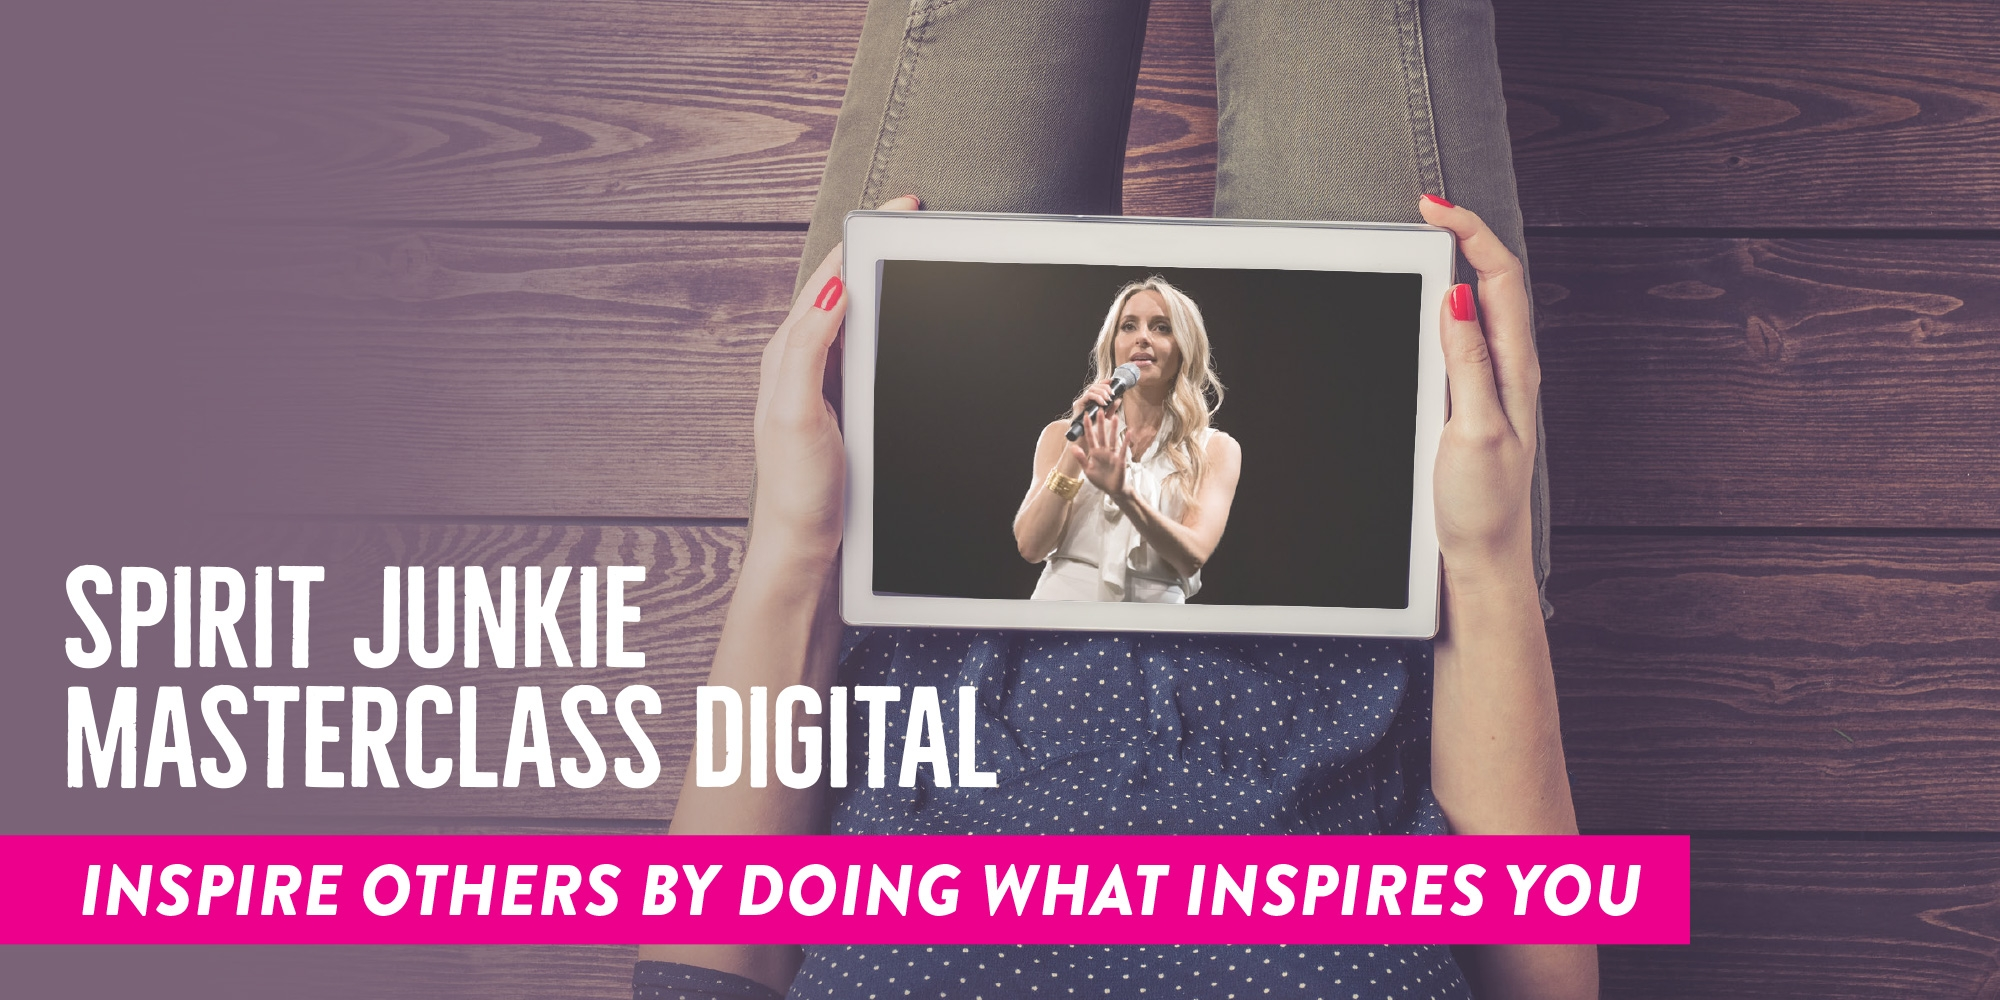 Spirit Junkie Masterclass Digital Course by Gabby Bernstein